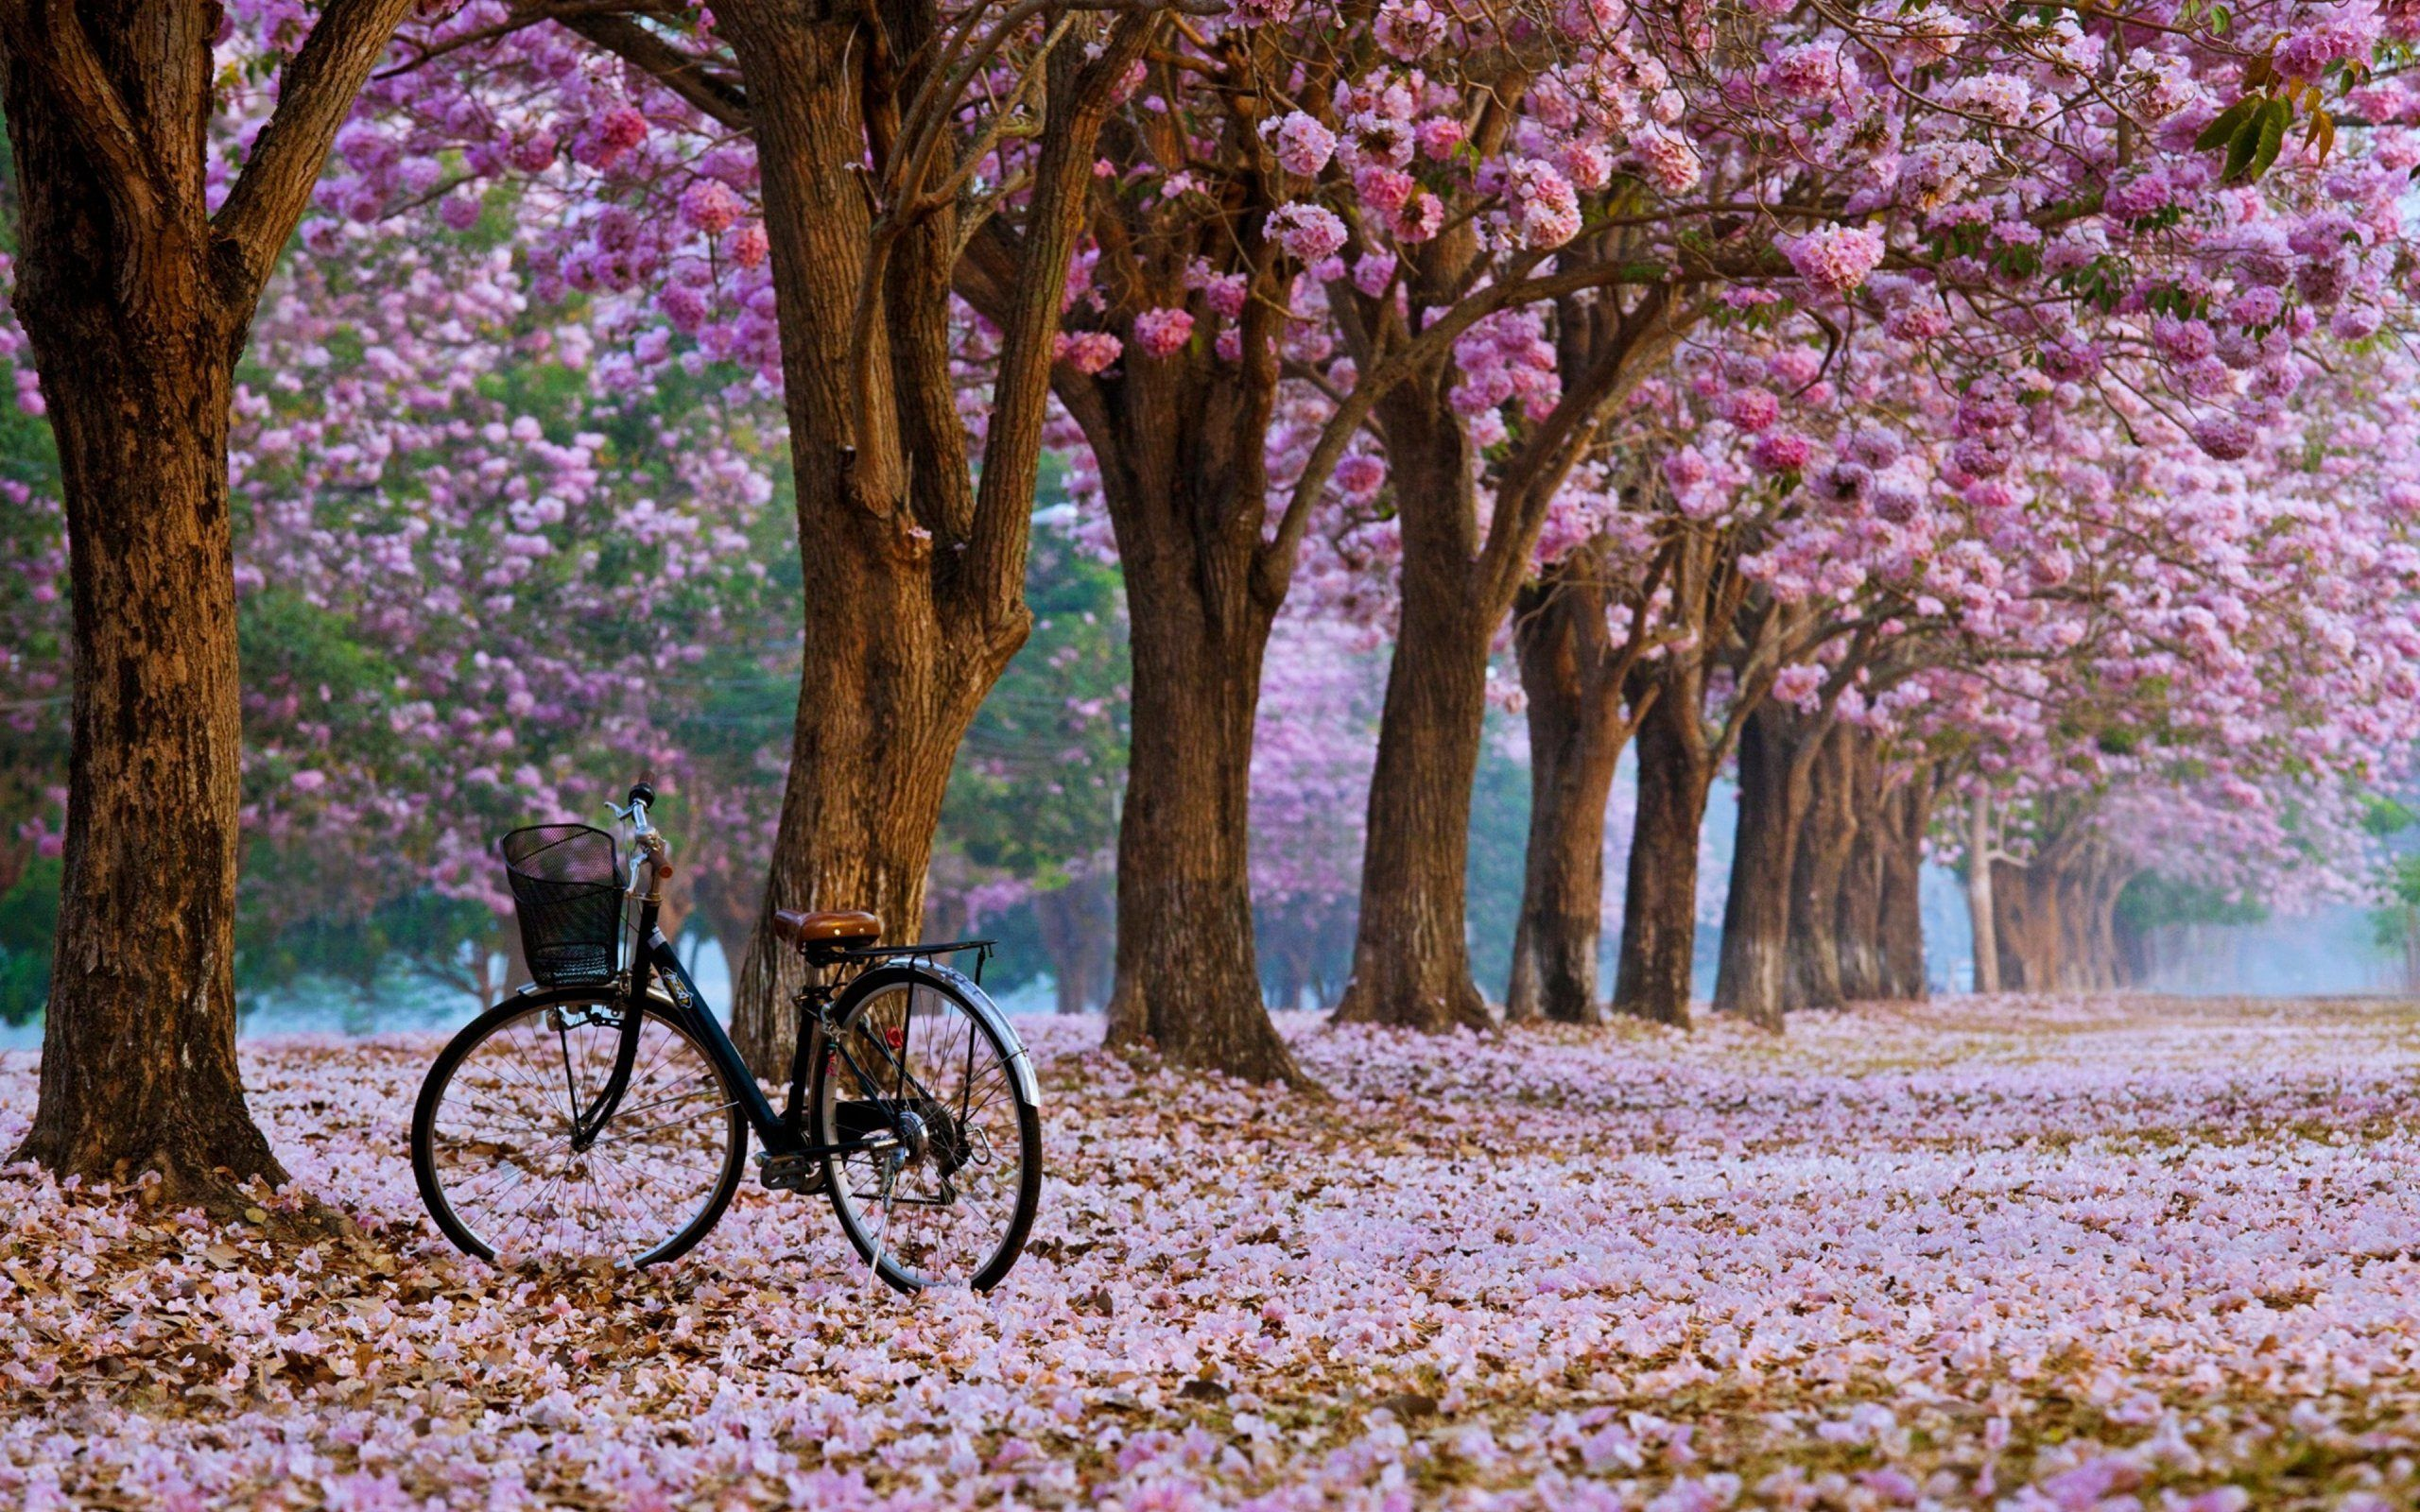 Cherry Blossom Tree Wallpapers Widescreen For Desktop X Px 4 00 Kb Blossom Trees Cherry Blossom Wallpaper Spring Nature